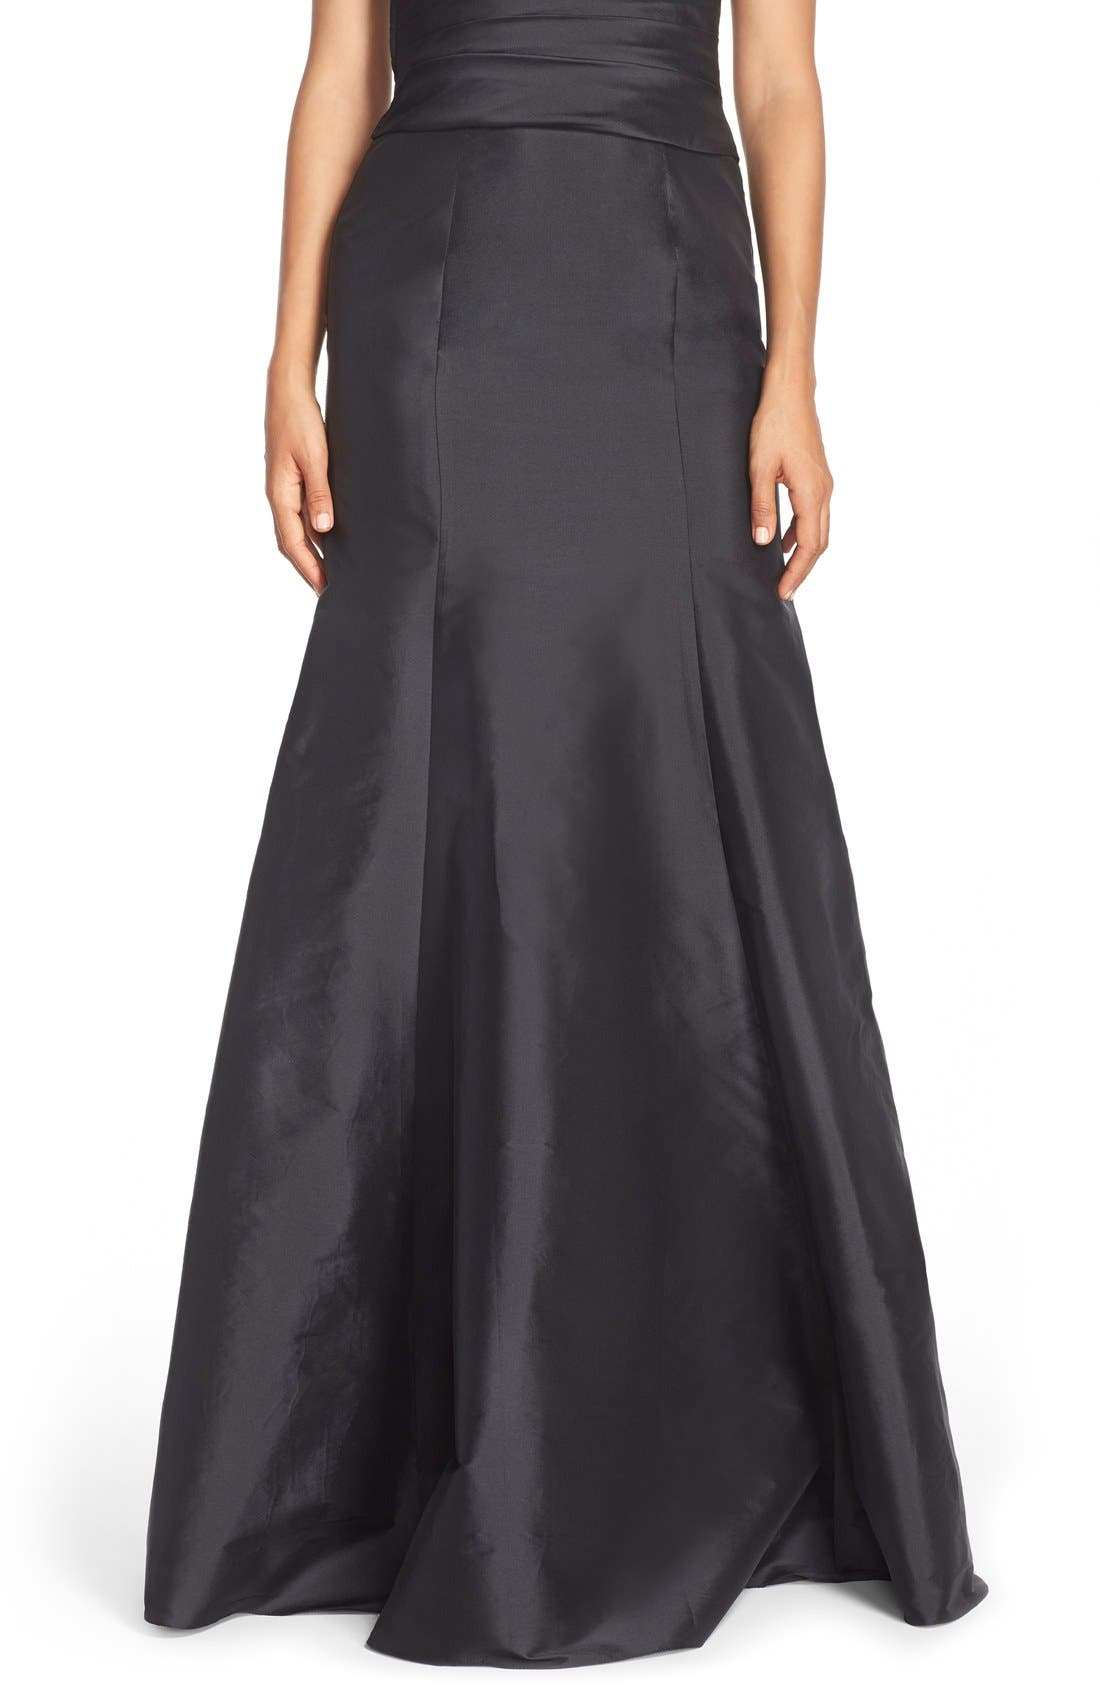 MONIQUE LHUILLIER BRIDESMAIDS, Floor Length Taffeta Mermaid Skirt, Main thumbnail 1, color, 001